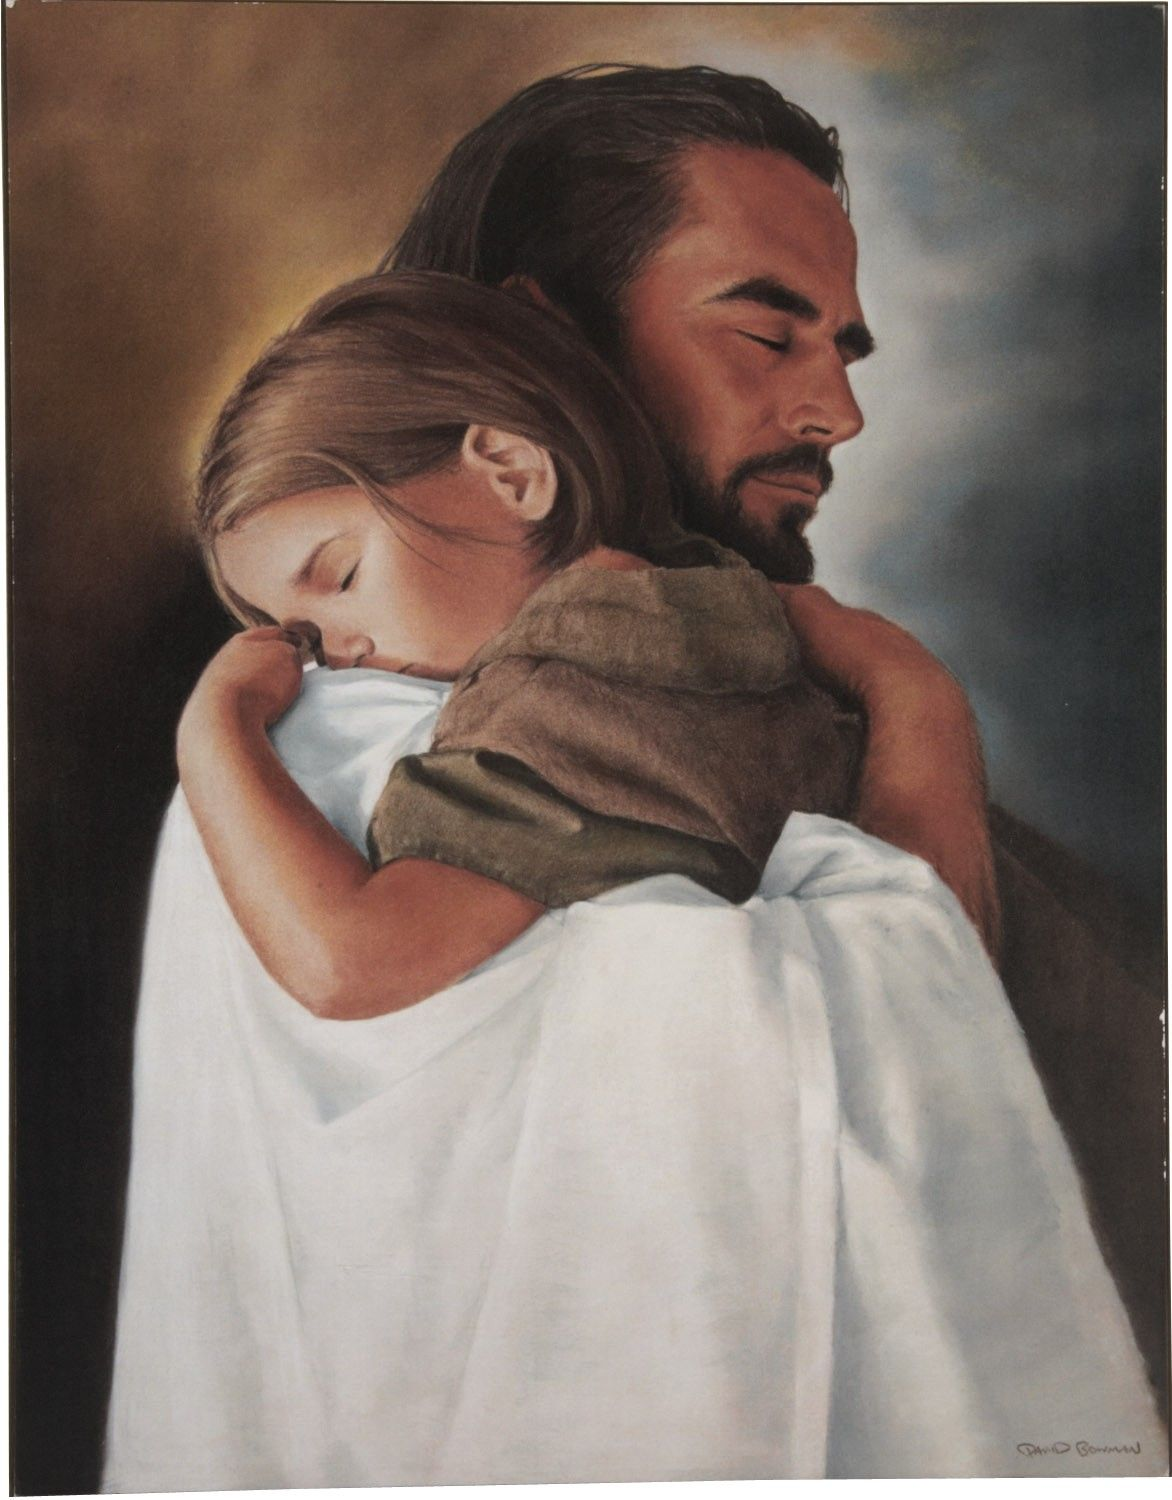 Jesus and Child - Home Decor - Christian Gifts | Jesus pictures, Christ,  Pictures of christ